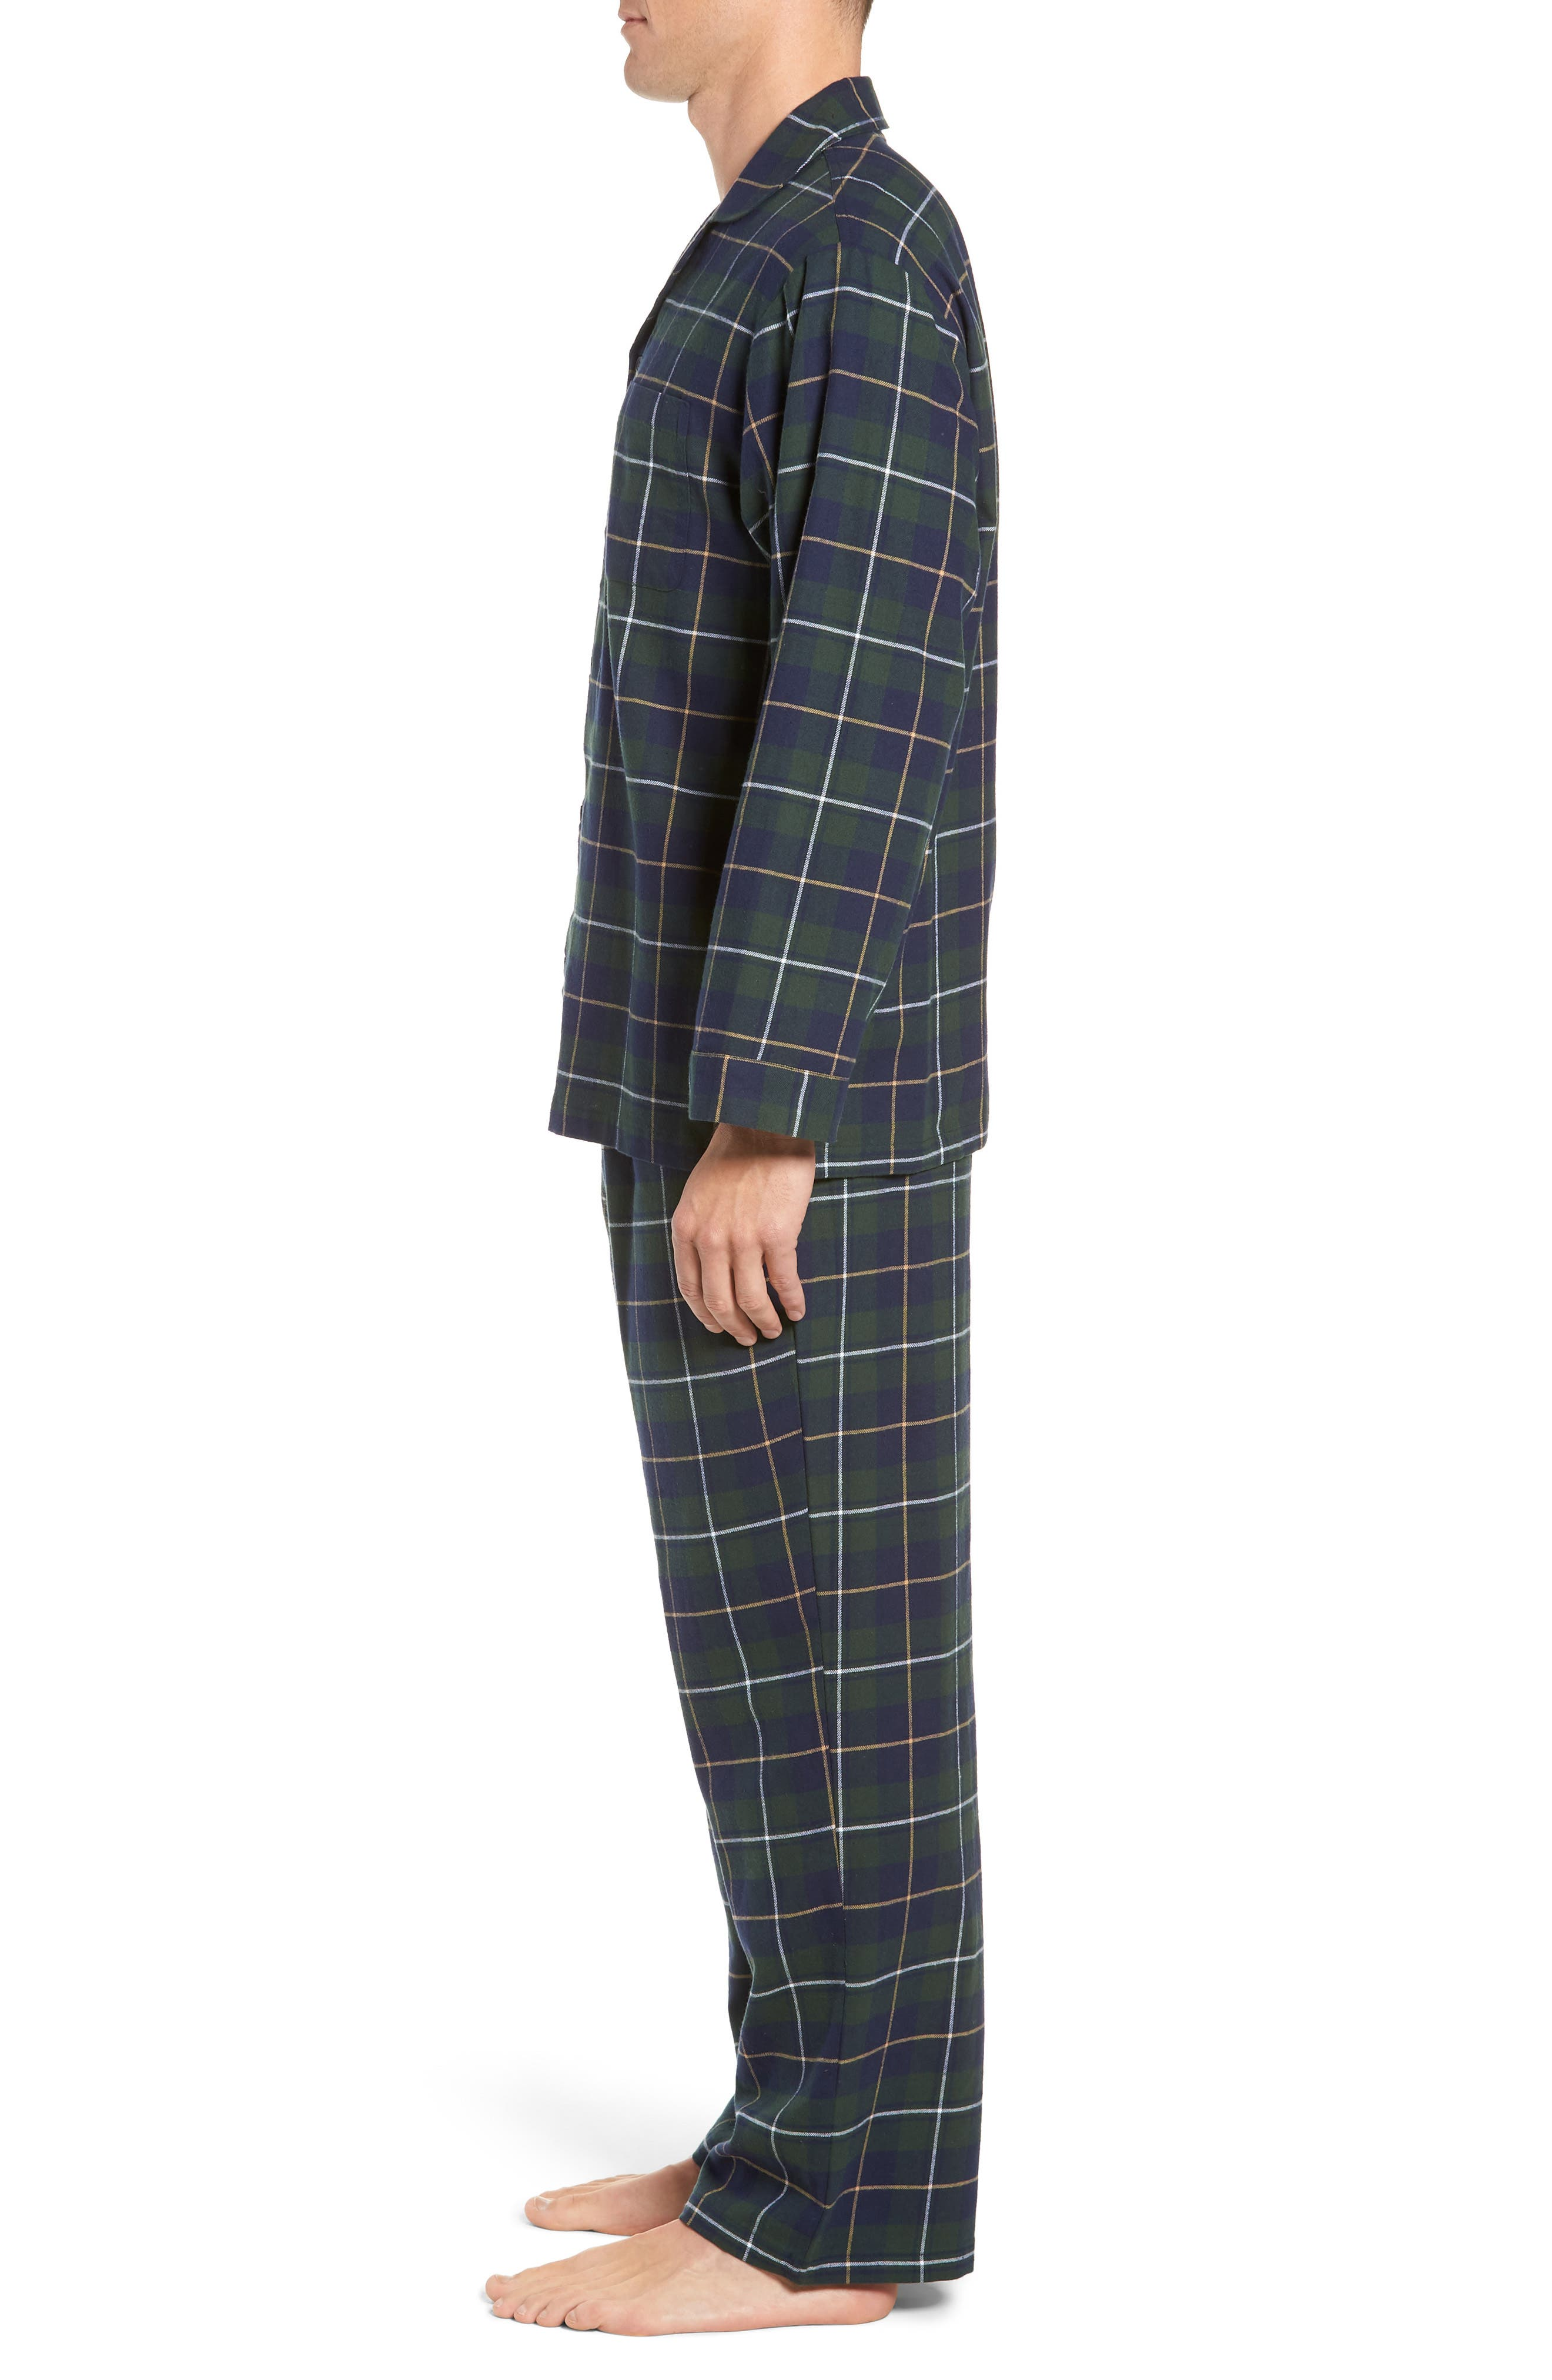 '824' Flannel Pajama Set,                             Alternate thumbnail 3, color,                             GREEN CHARCOAL FADED PLAID